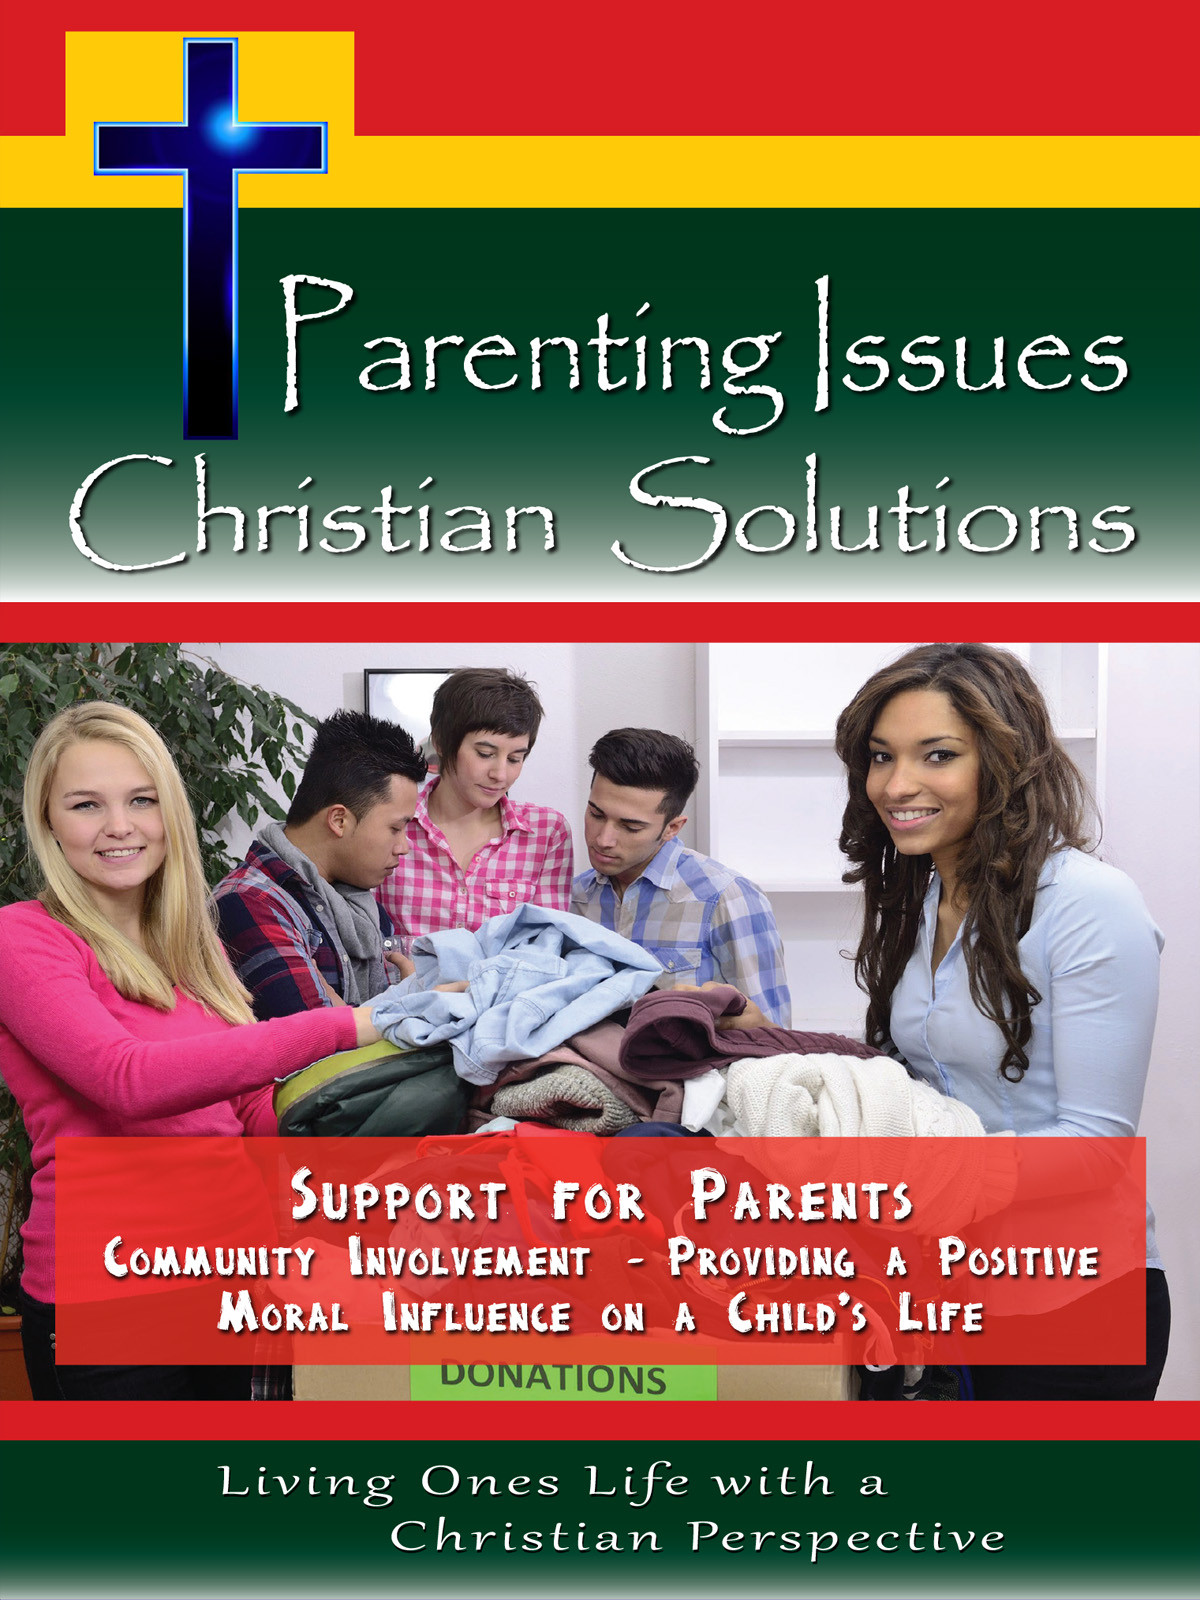 CH10005 - Support for Parents Community Involvement Providing a Positive Moral Influence on a Child's Life